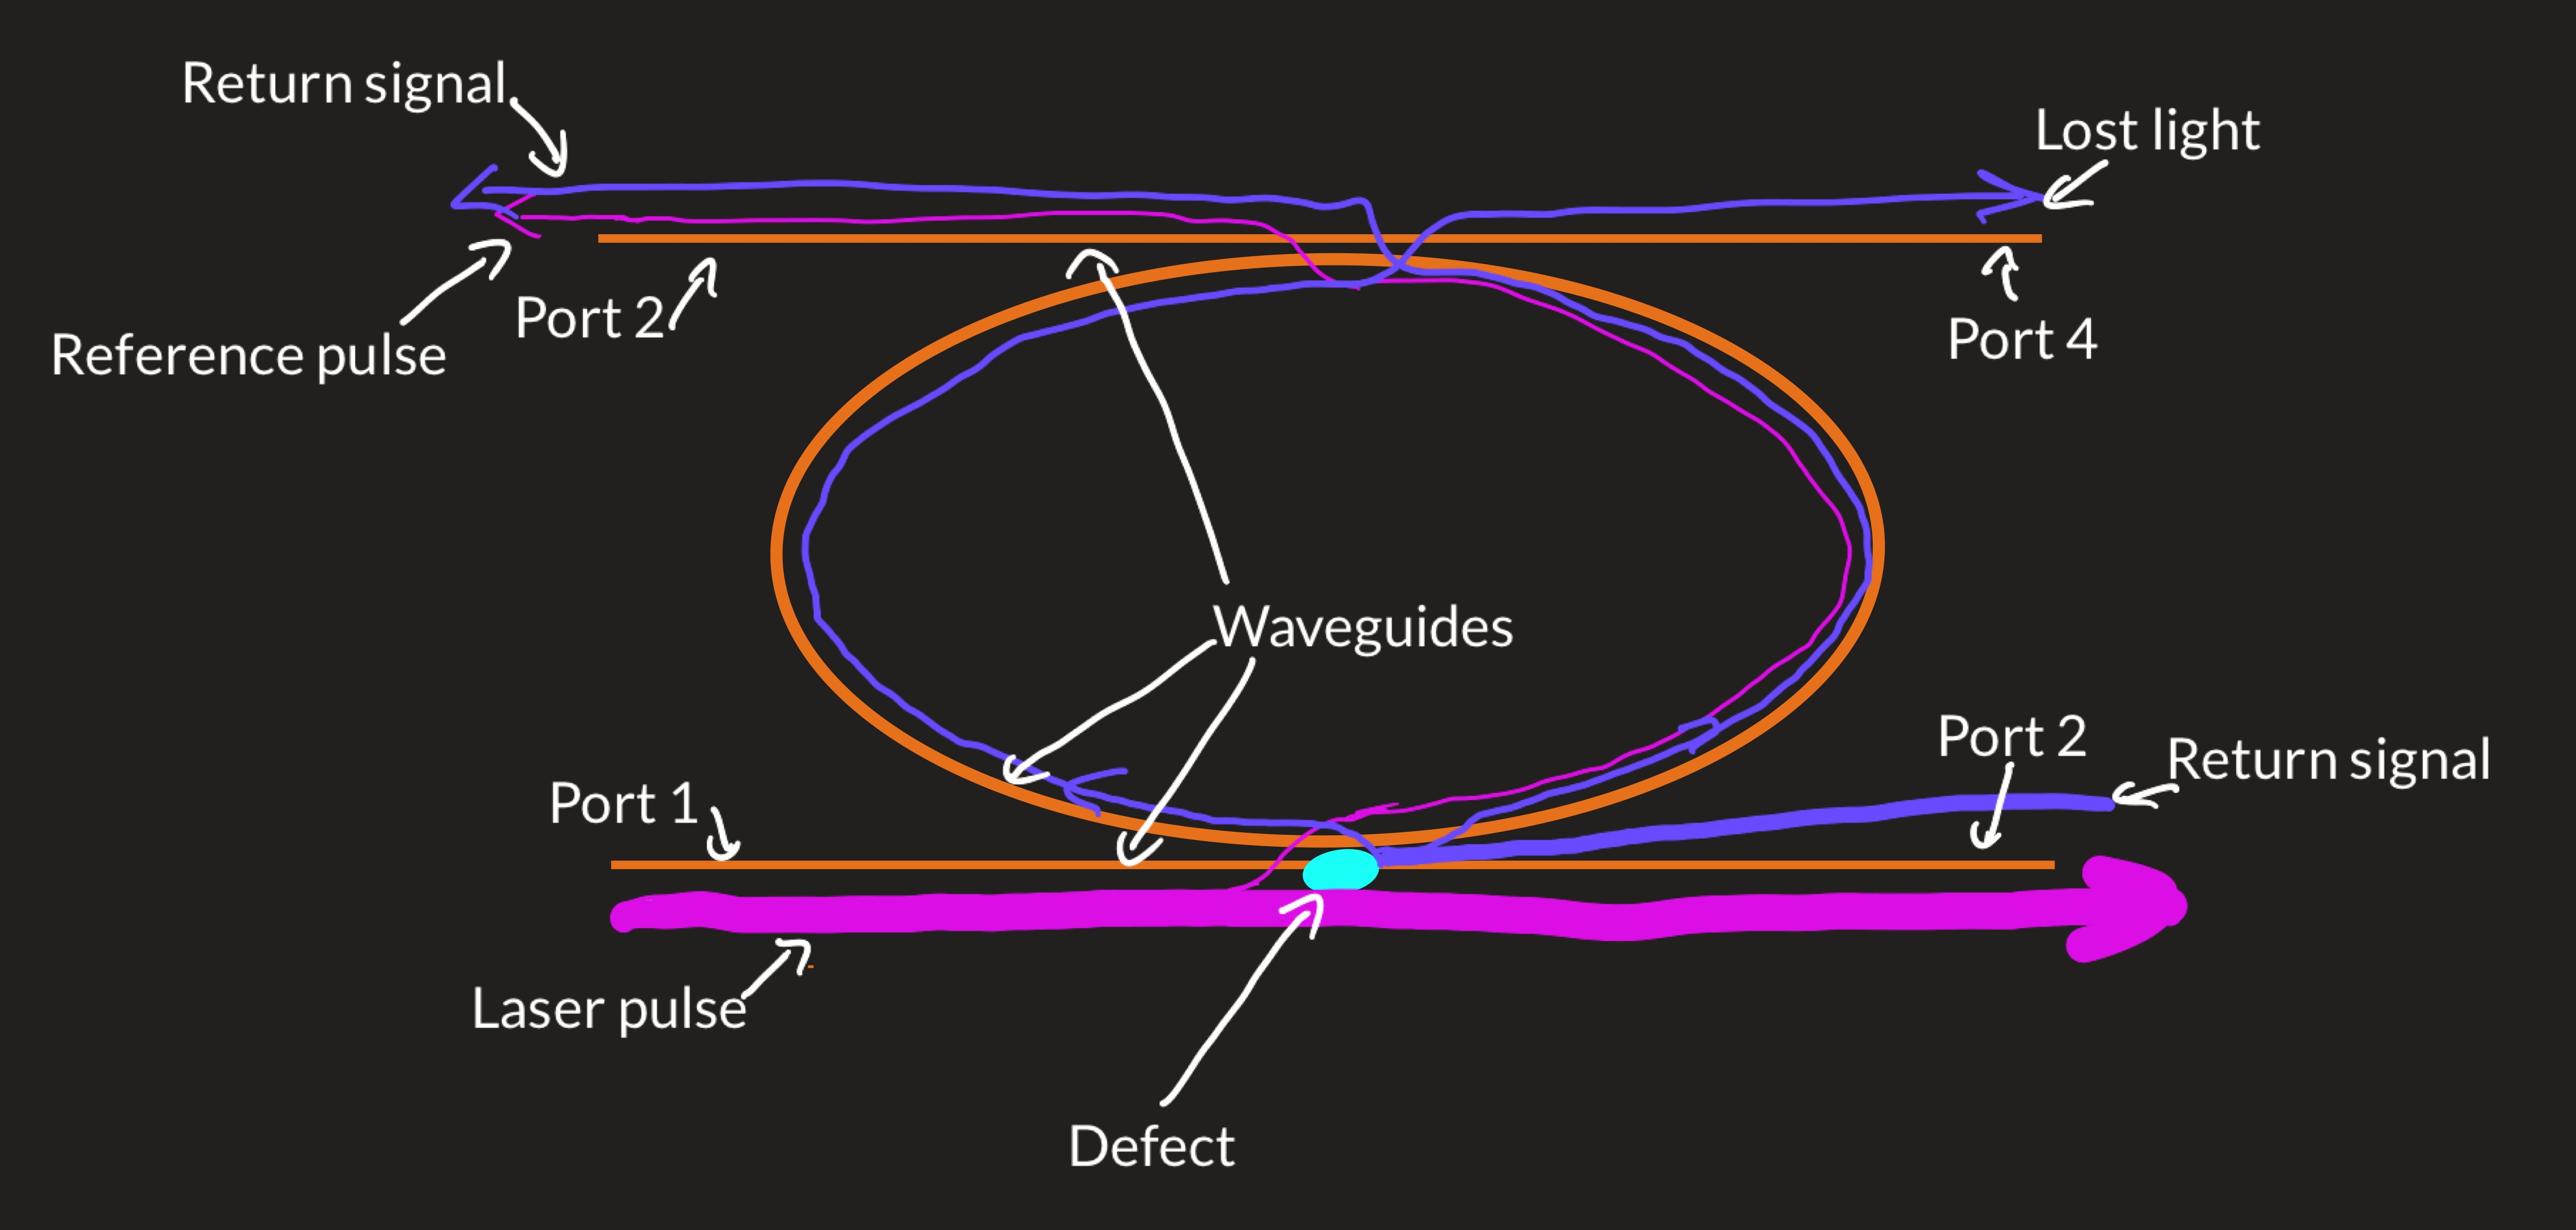 """""""Artist's"""" impression of the resonator. The laser pulse (in pink) enters from port 1 (brown). A small portion jumps to the racetrack and then to the next waveguide where it exits from port 3. The remainder passes through the defect (light blue) and exits port 2. The lidar return signal (dark blue) enters port 2, reflects off the defect and exits port 3. Half of the lidar return signal is lost through port 4."""